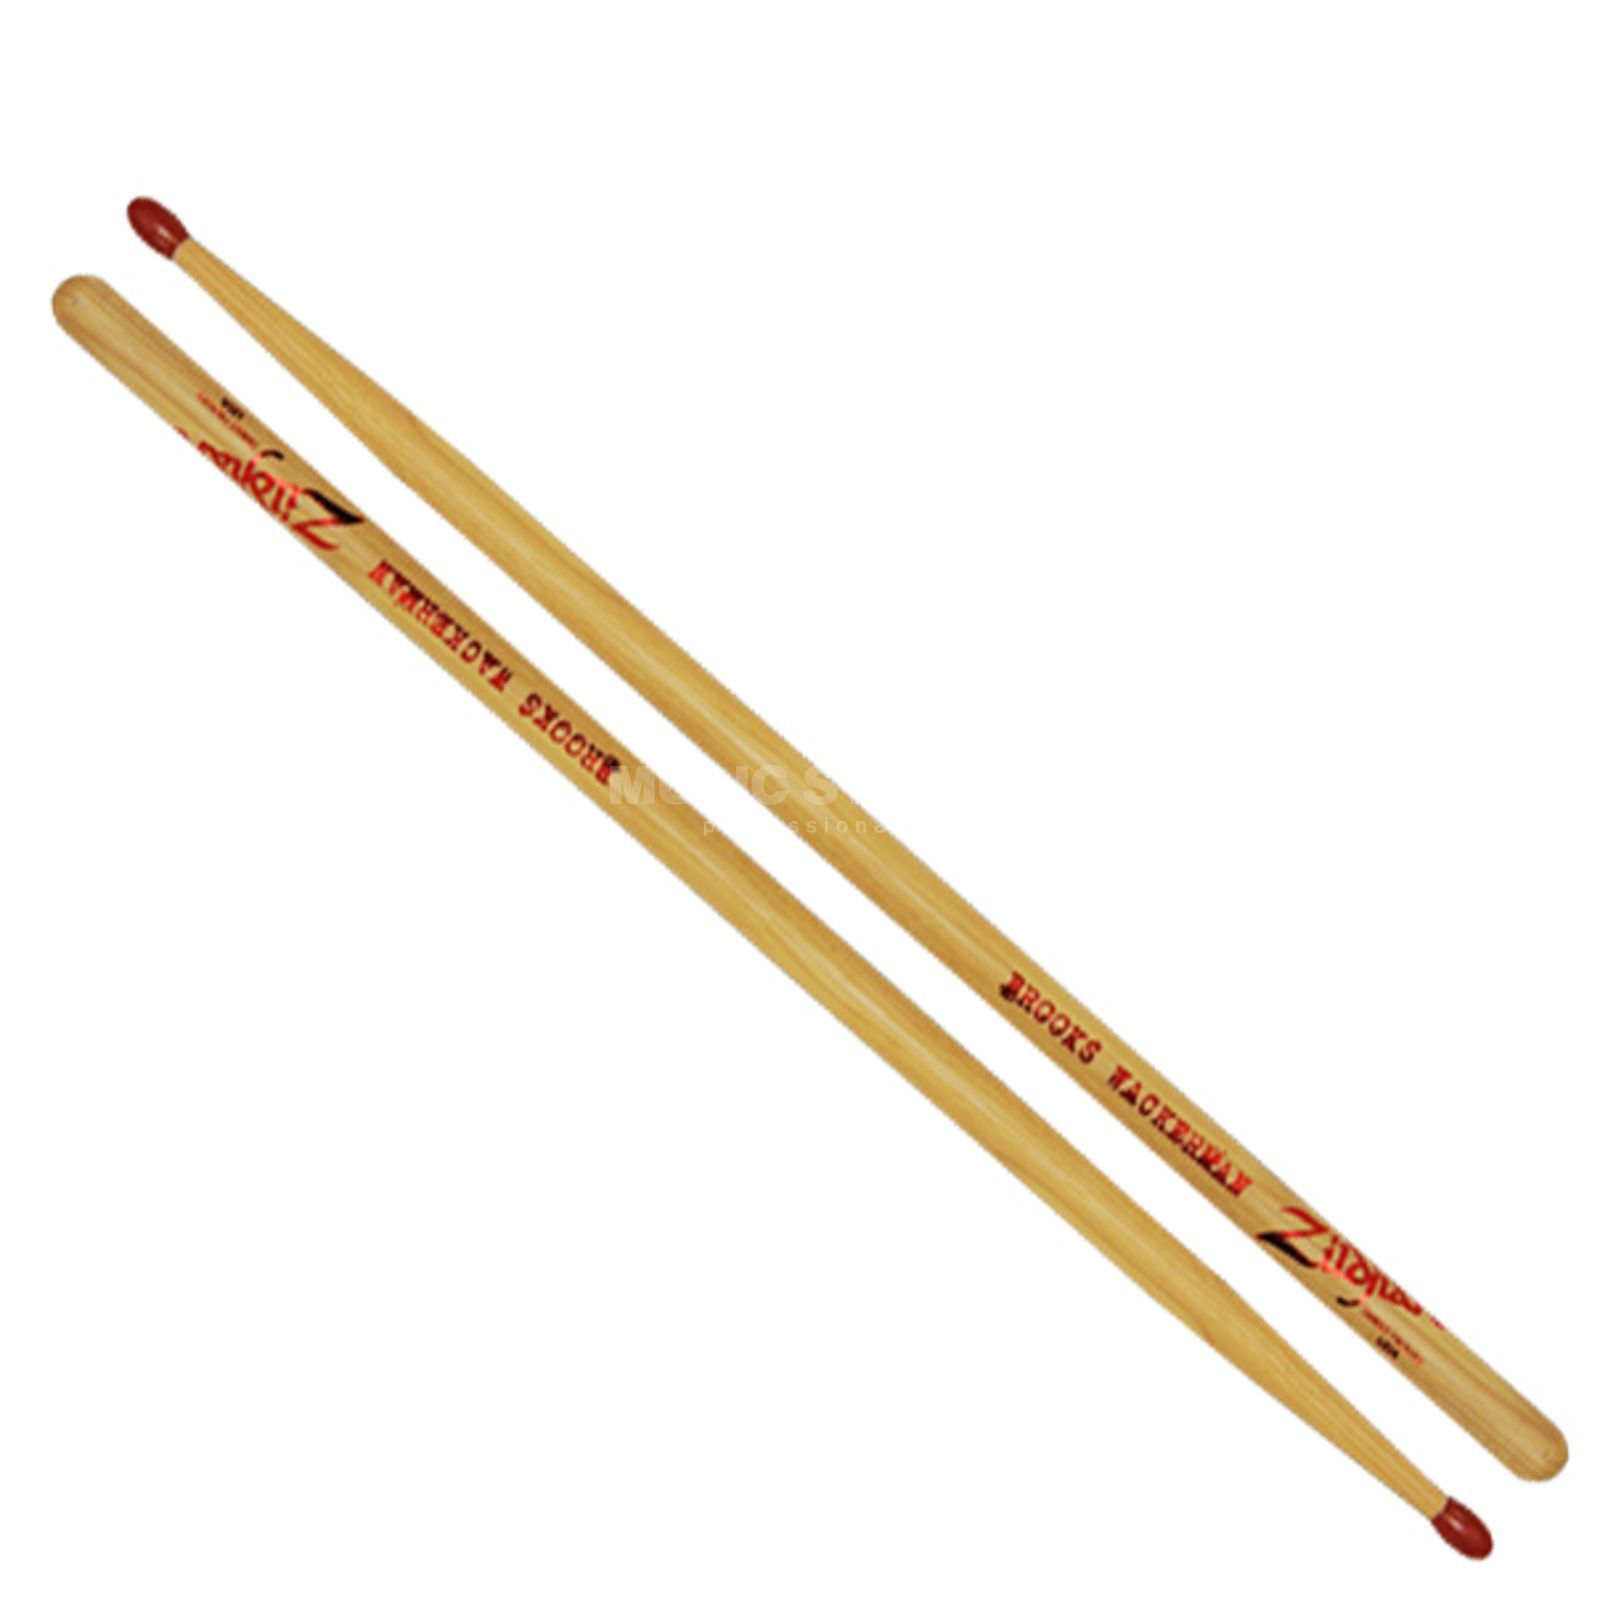 Zildjian Brooks Wackerman Sticks, Nylon Tip Produktbild